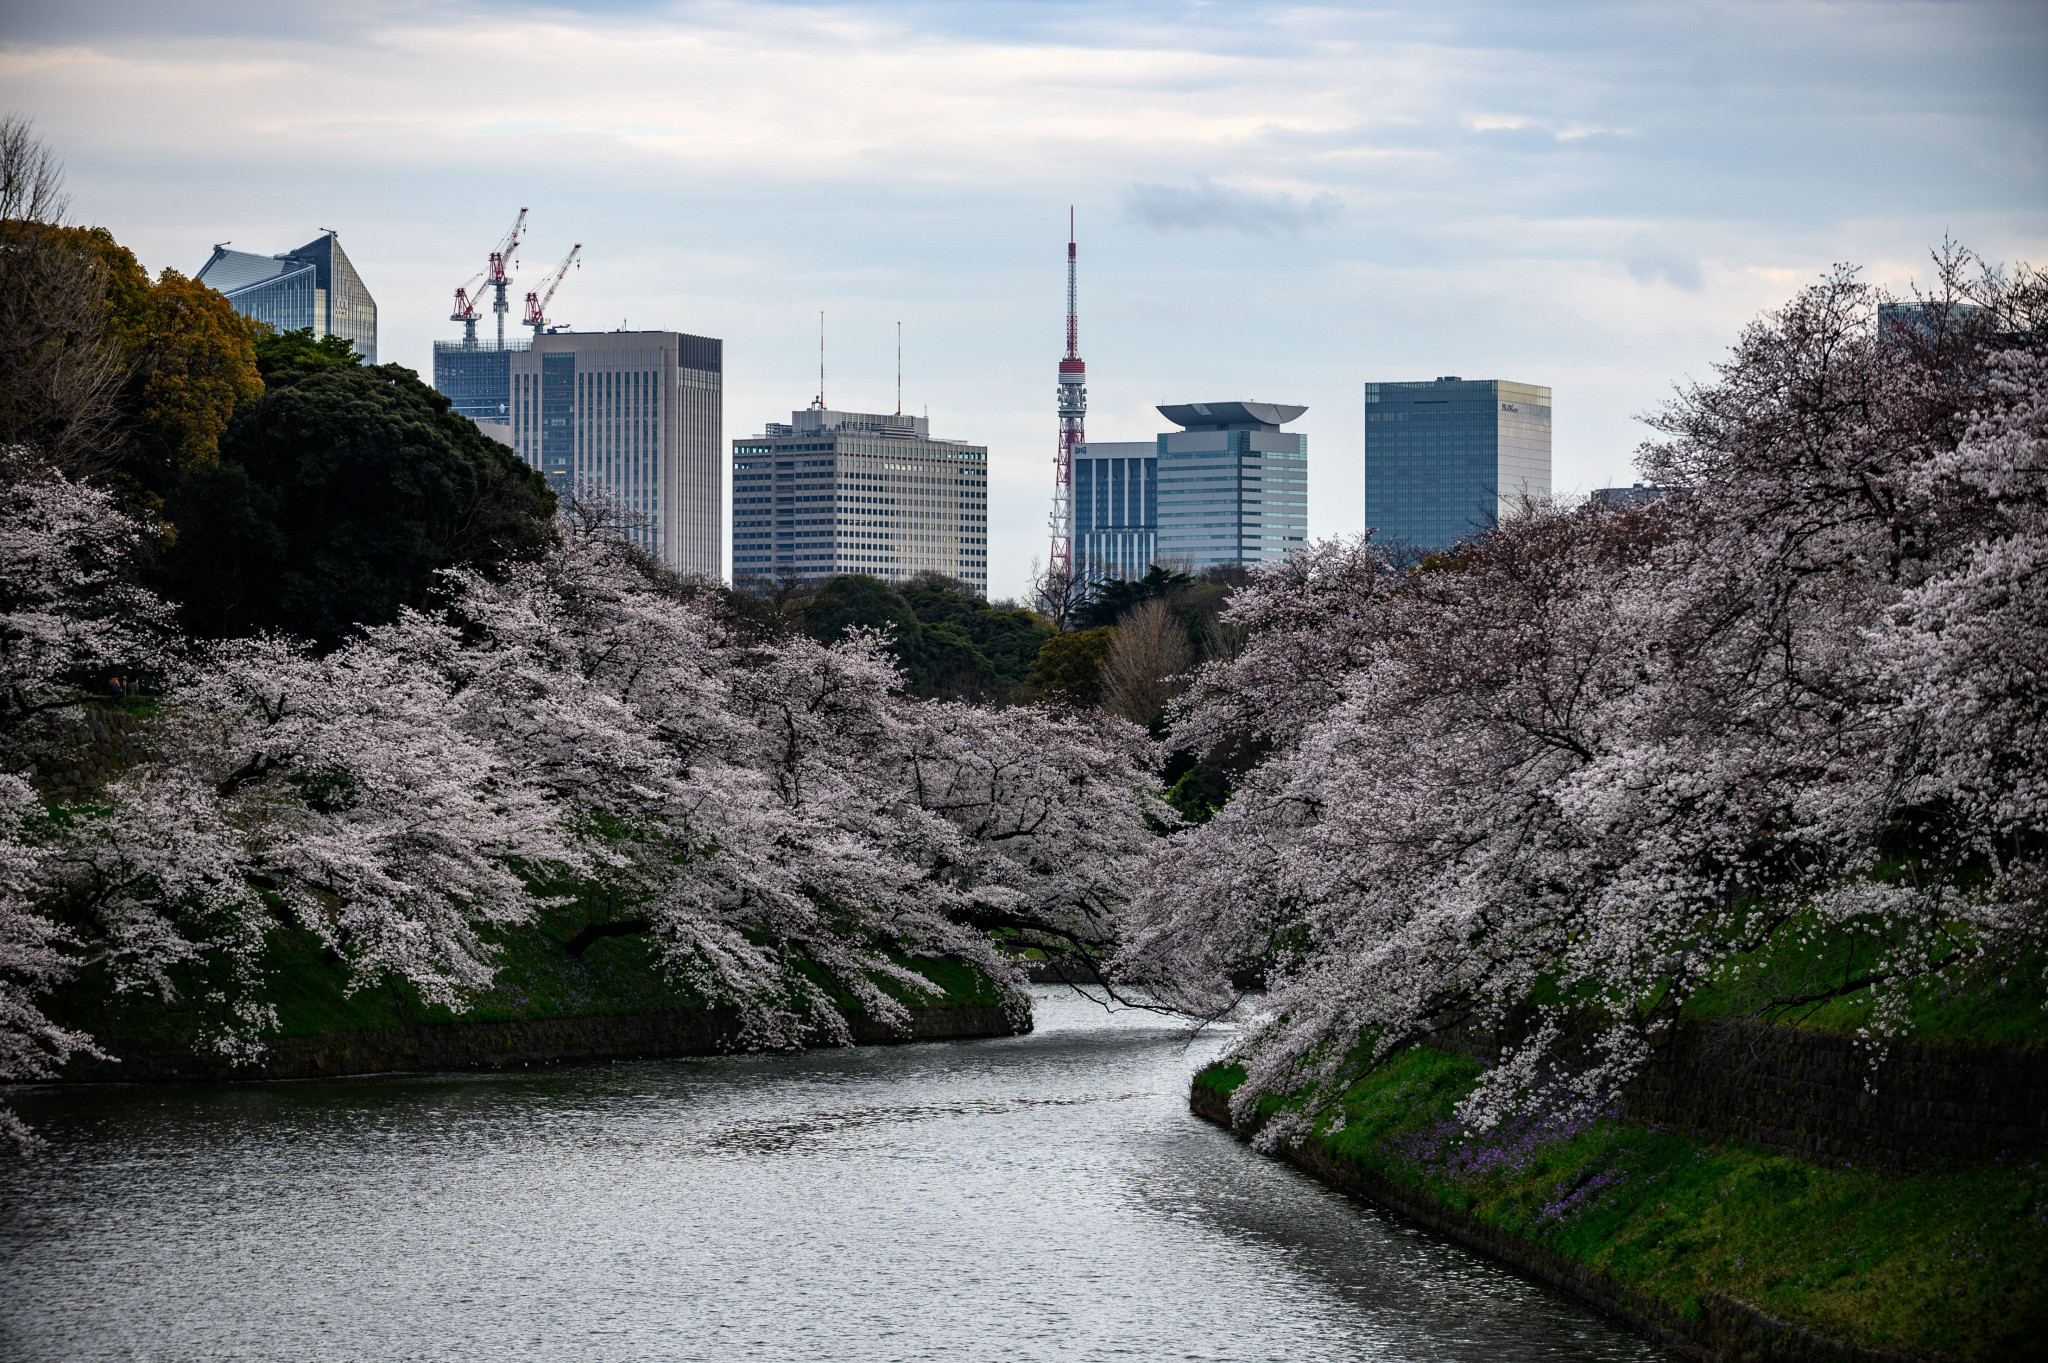 A 'Cherry Blossom Olympics' in the spring had been mooted but a summer Games now seems the likeliest option ©Getty Images